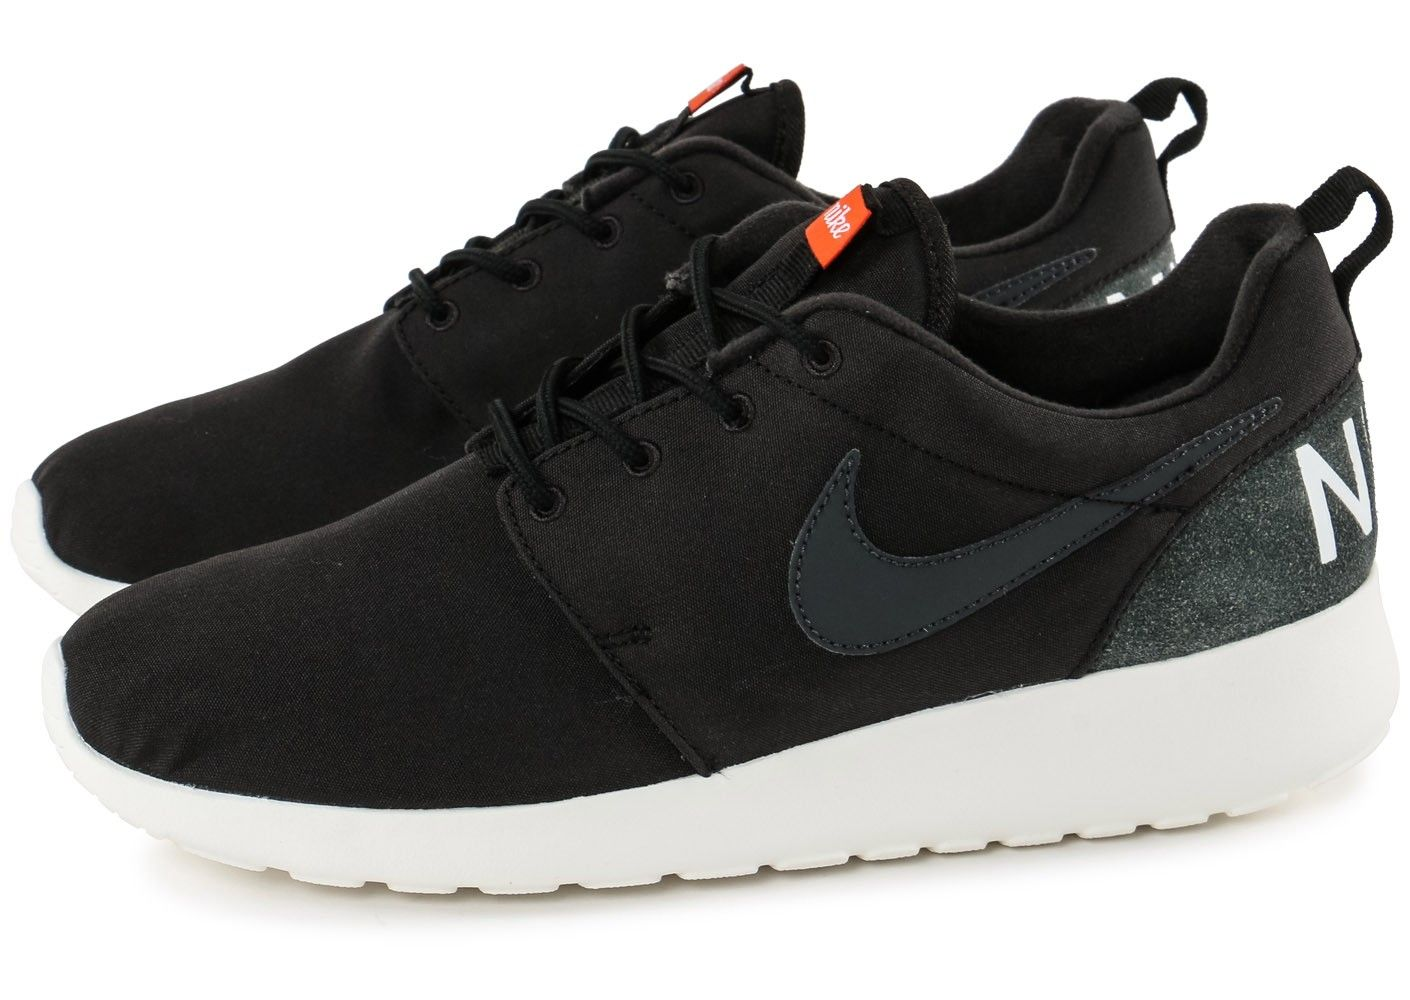 plus récent fc4f7 8467f Chausport Chaussures Baskets Roshe Run Homme Flyknit Nike ...